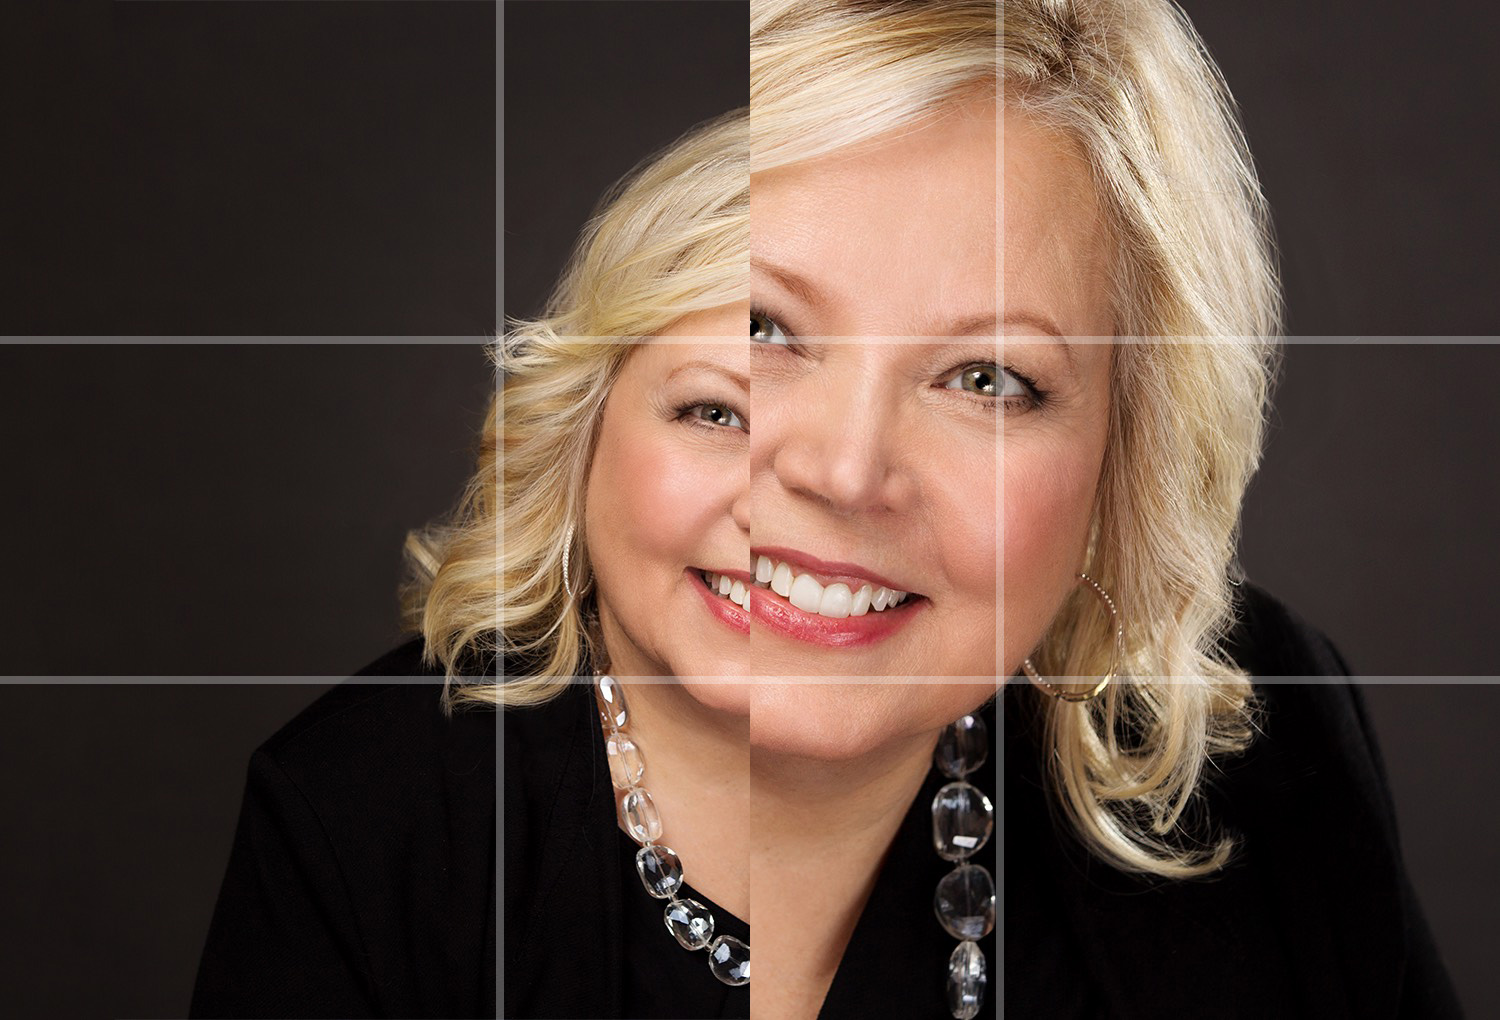 Los Angeles Corporate Headshot Photographer - Cropping